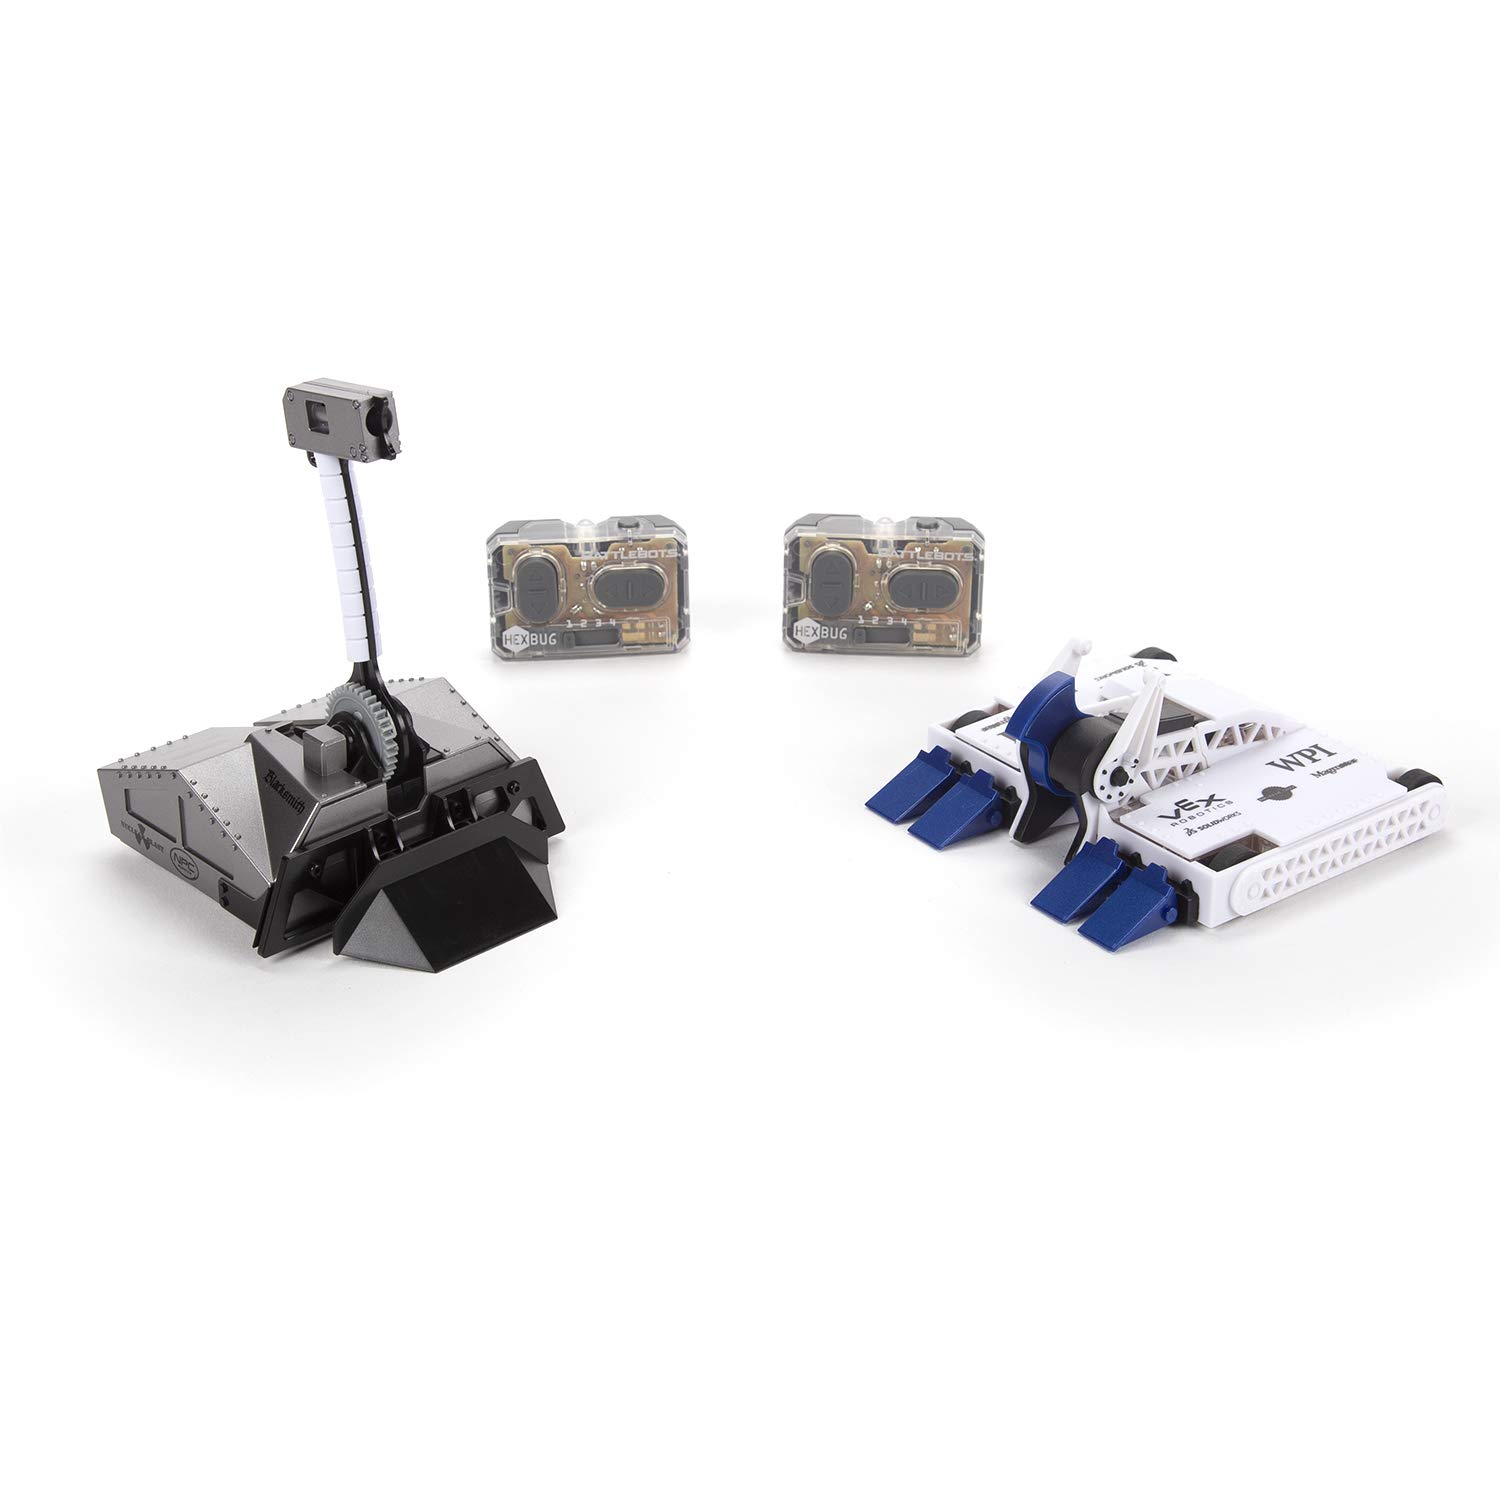 HEXBUG BattleBots Rivals 4.0 (Blacksmith and Biteforce) Toys for Kids, Fun Battle Bot Hex Bugs Black Smith and Bite Force by HEXBUG (Image #1)